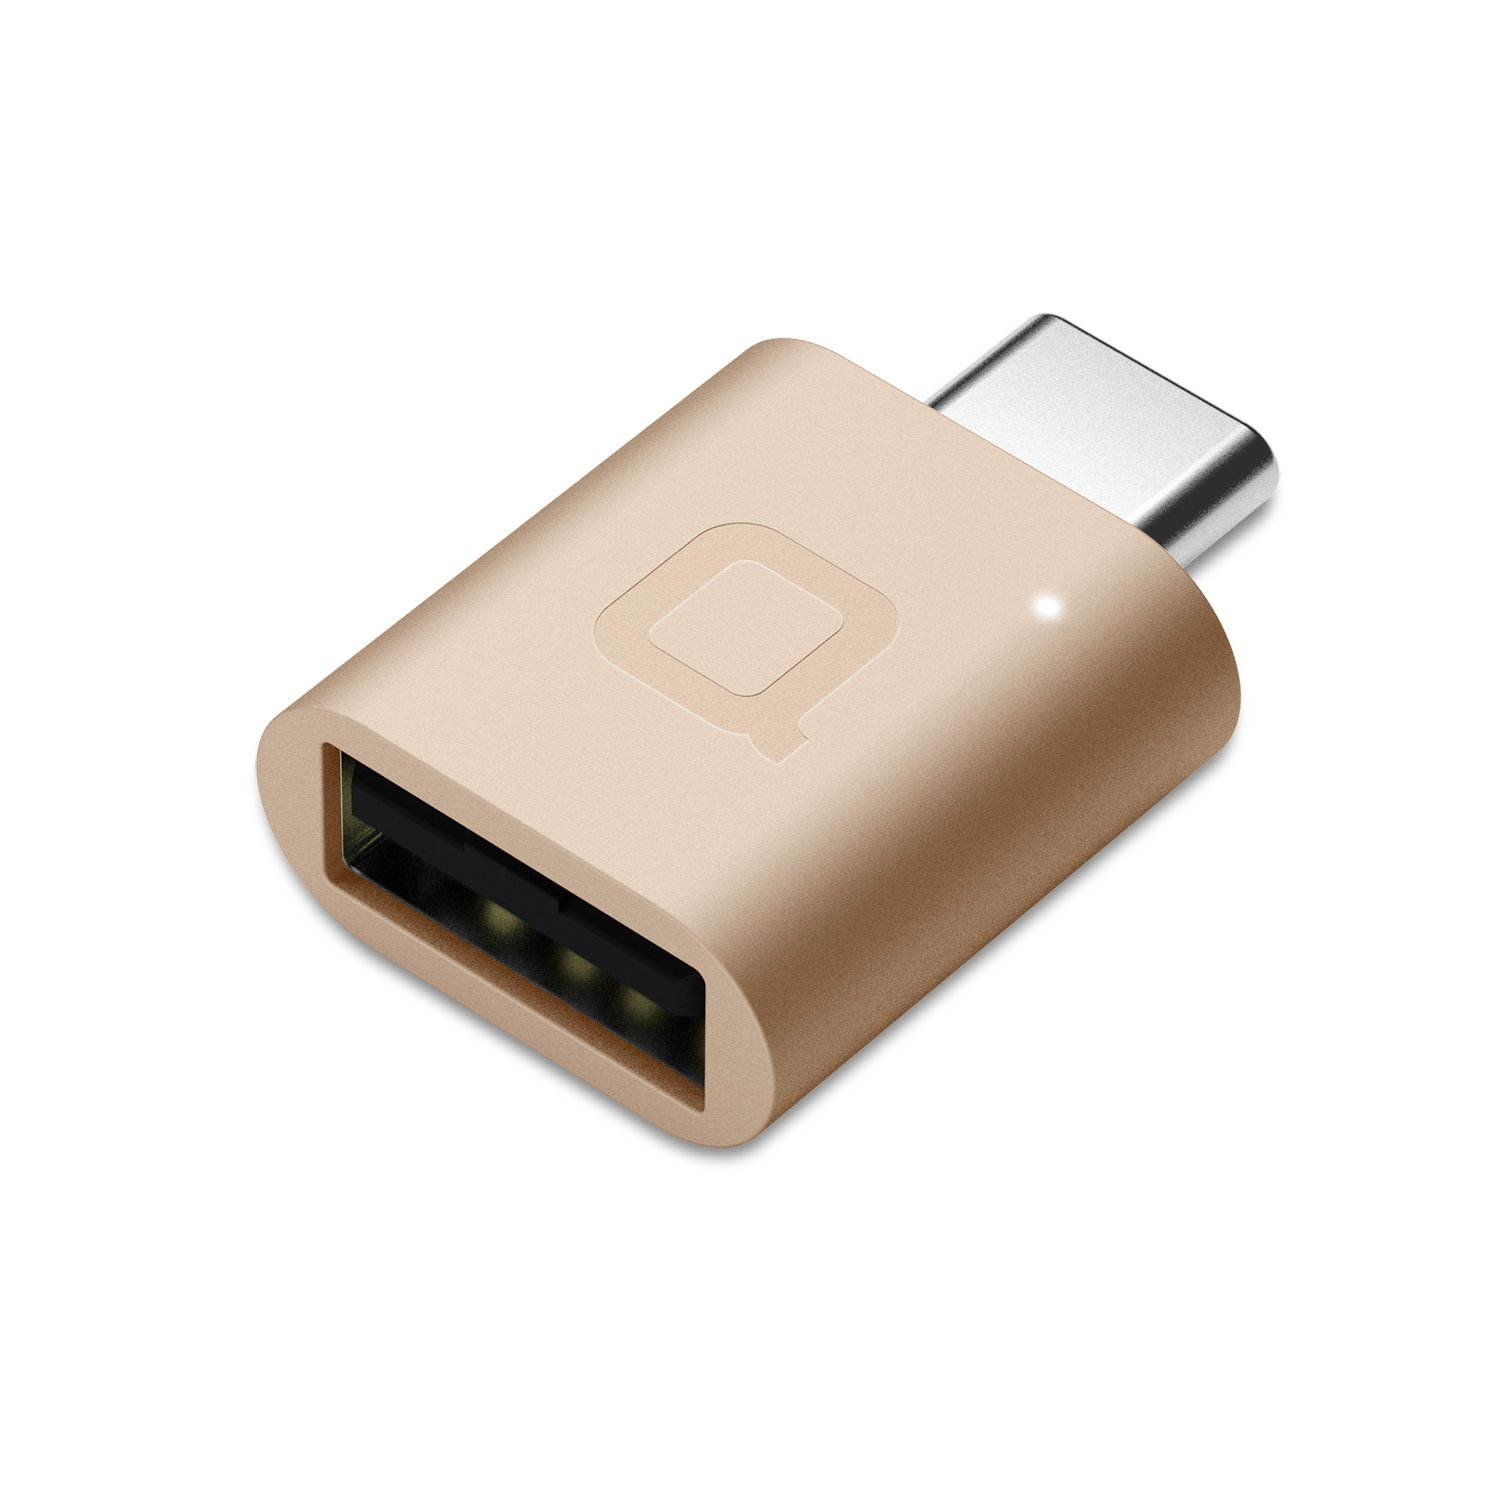 Nonda USB-C Adapter product image